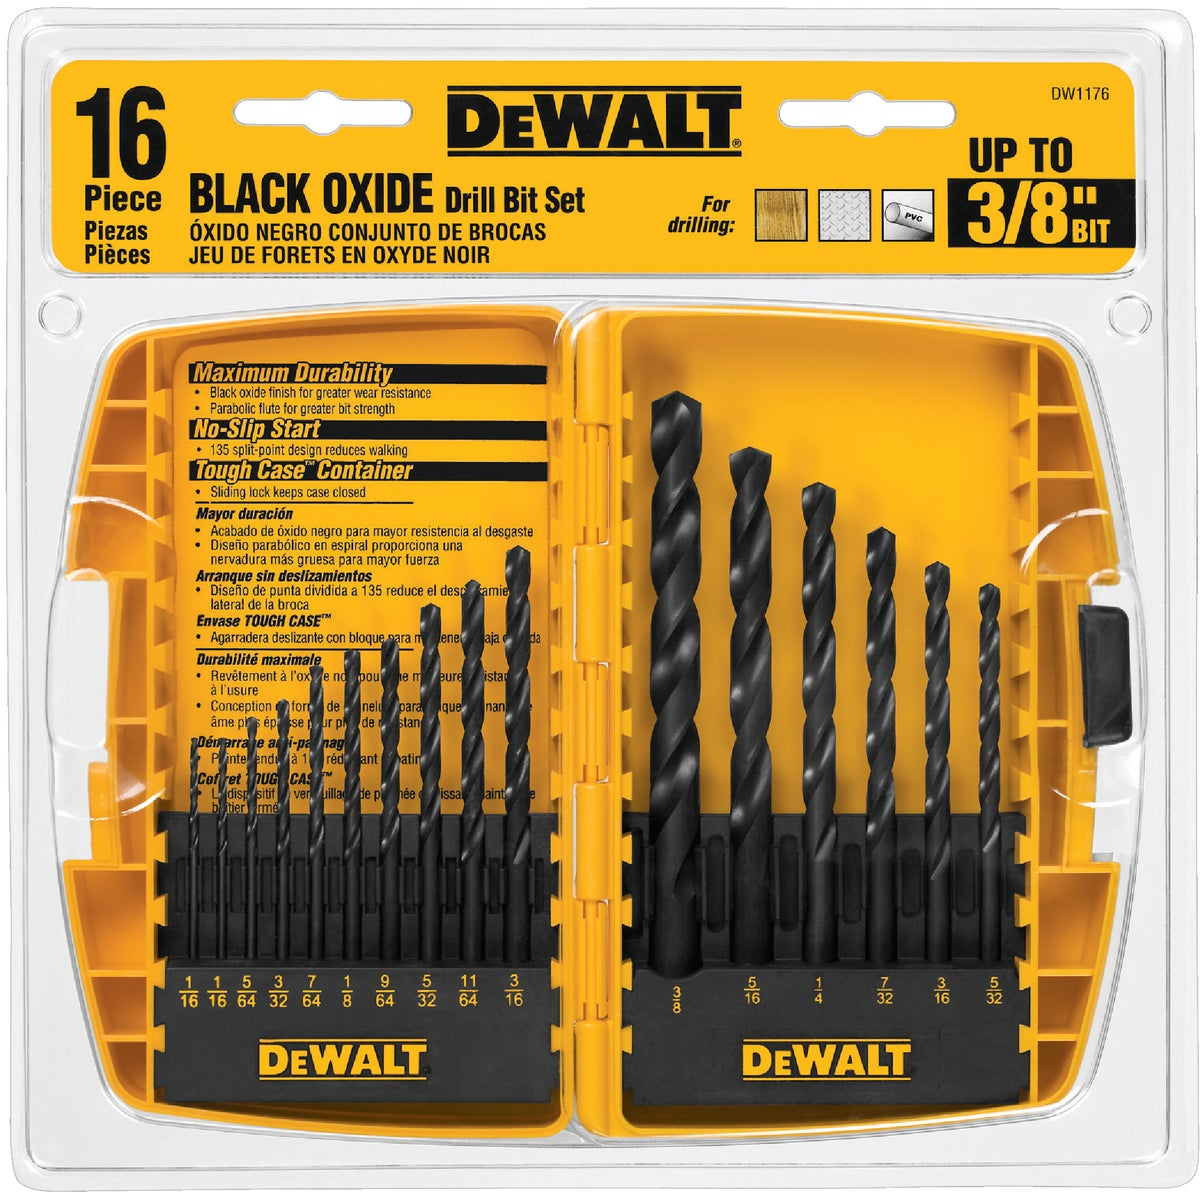 16PC BLK OXIDE BIT SET - DW1176 by DeWalt